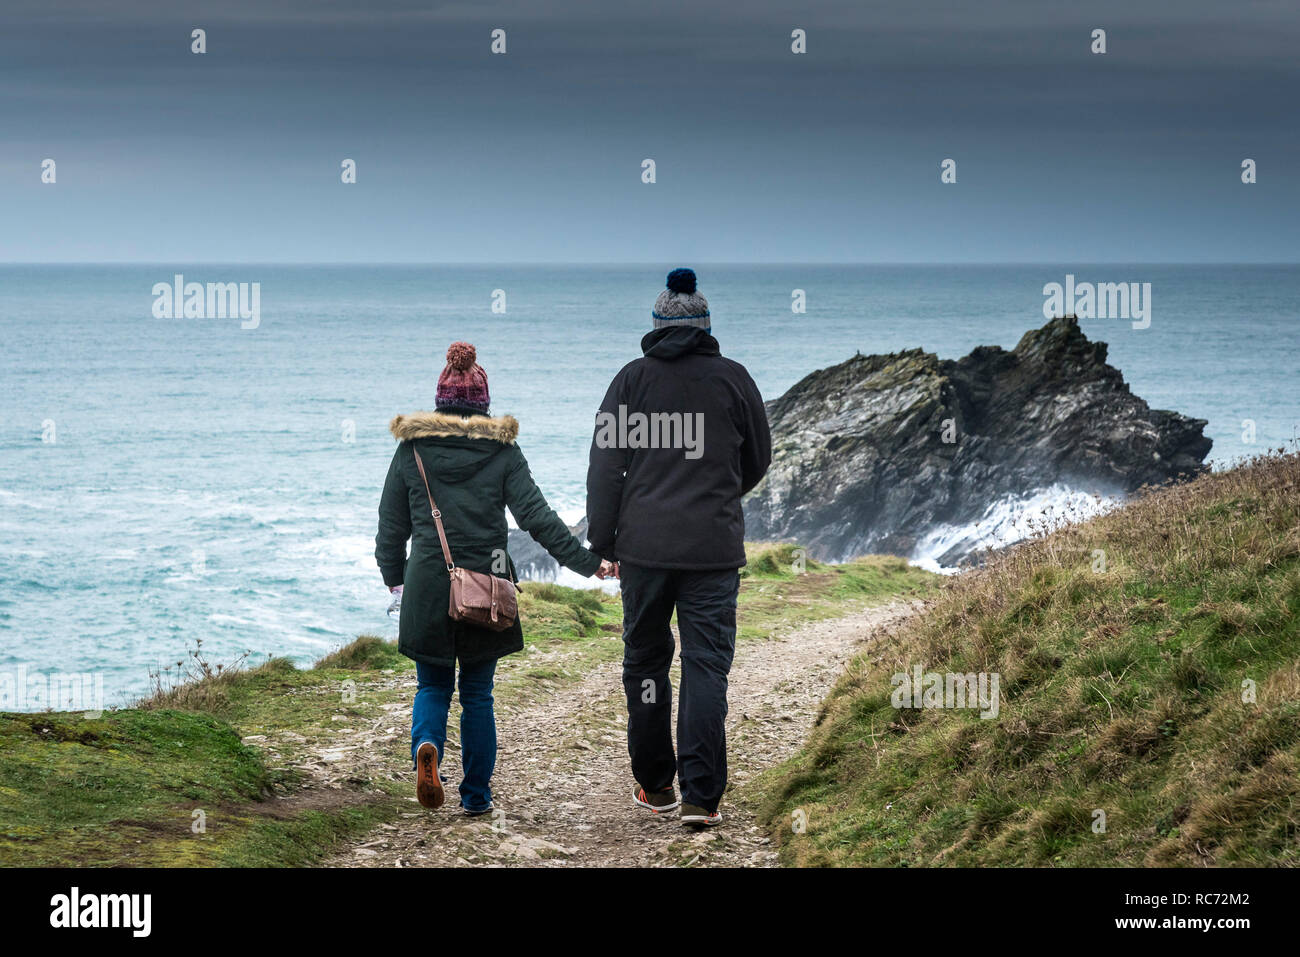 Two people walking on a coastal footpath holding hands and dressed for the cold chilly weather. - Stock Image